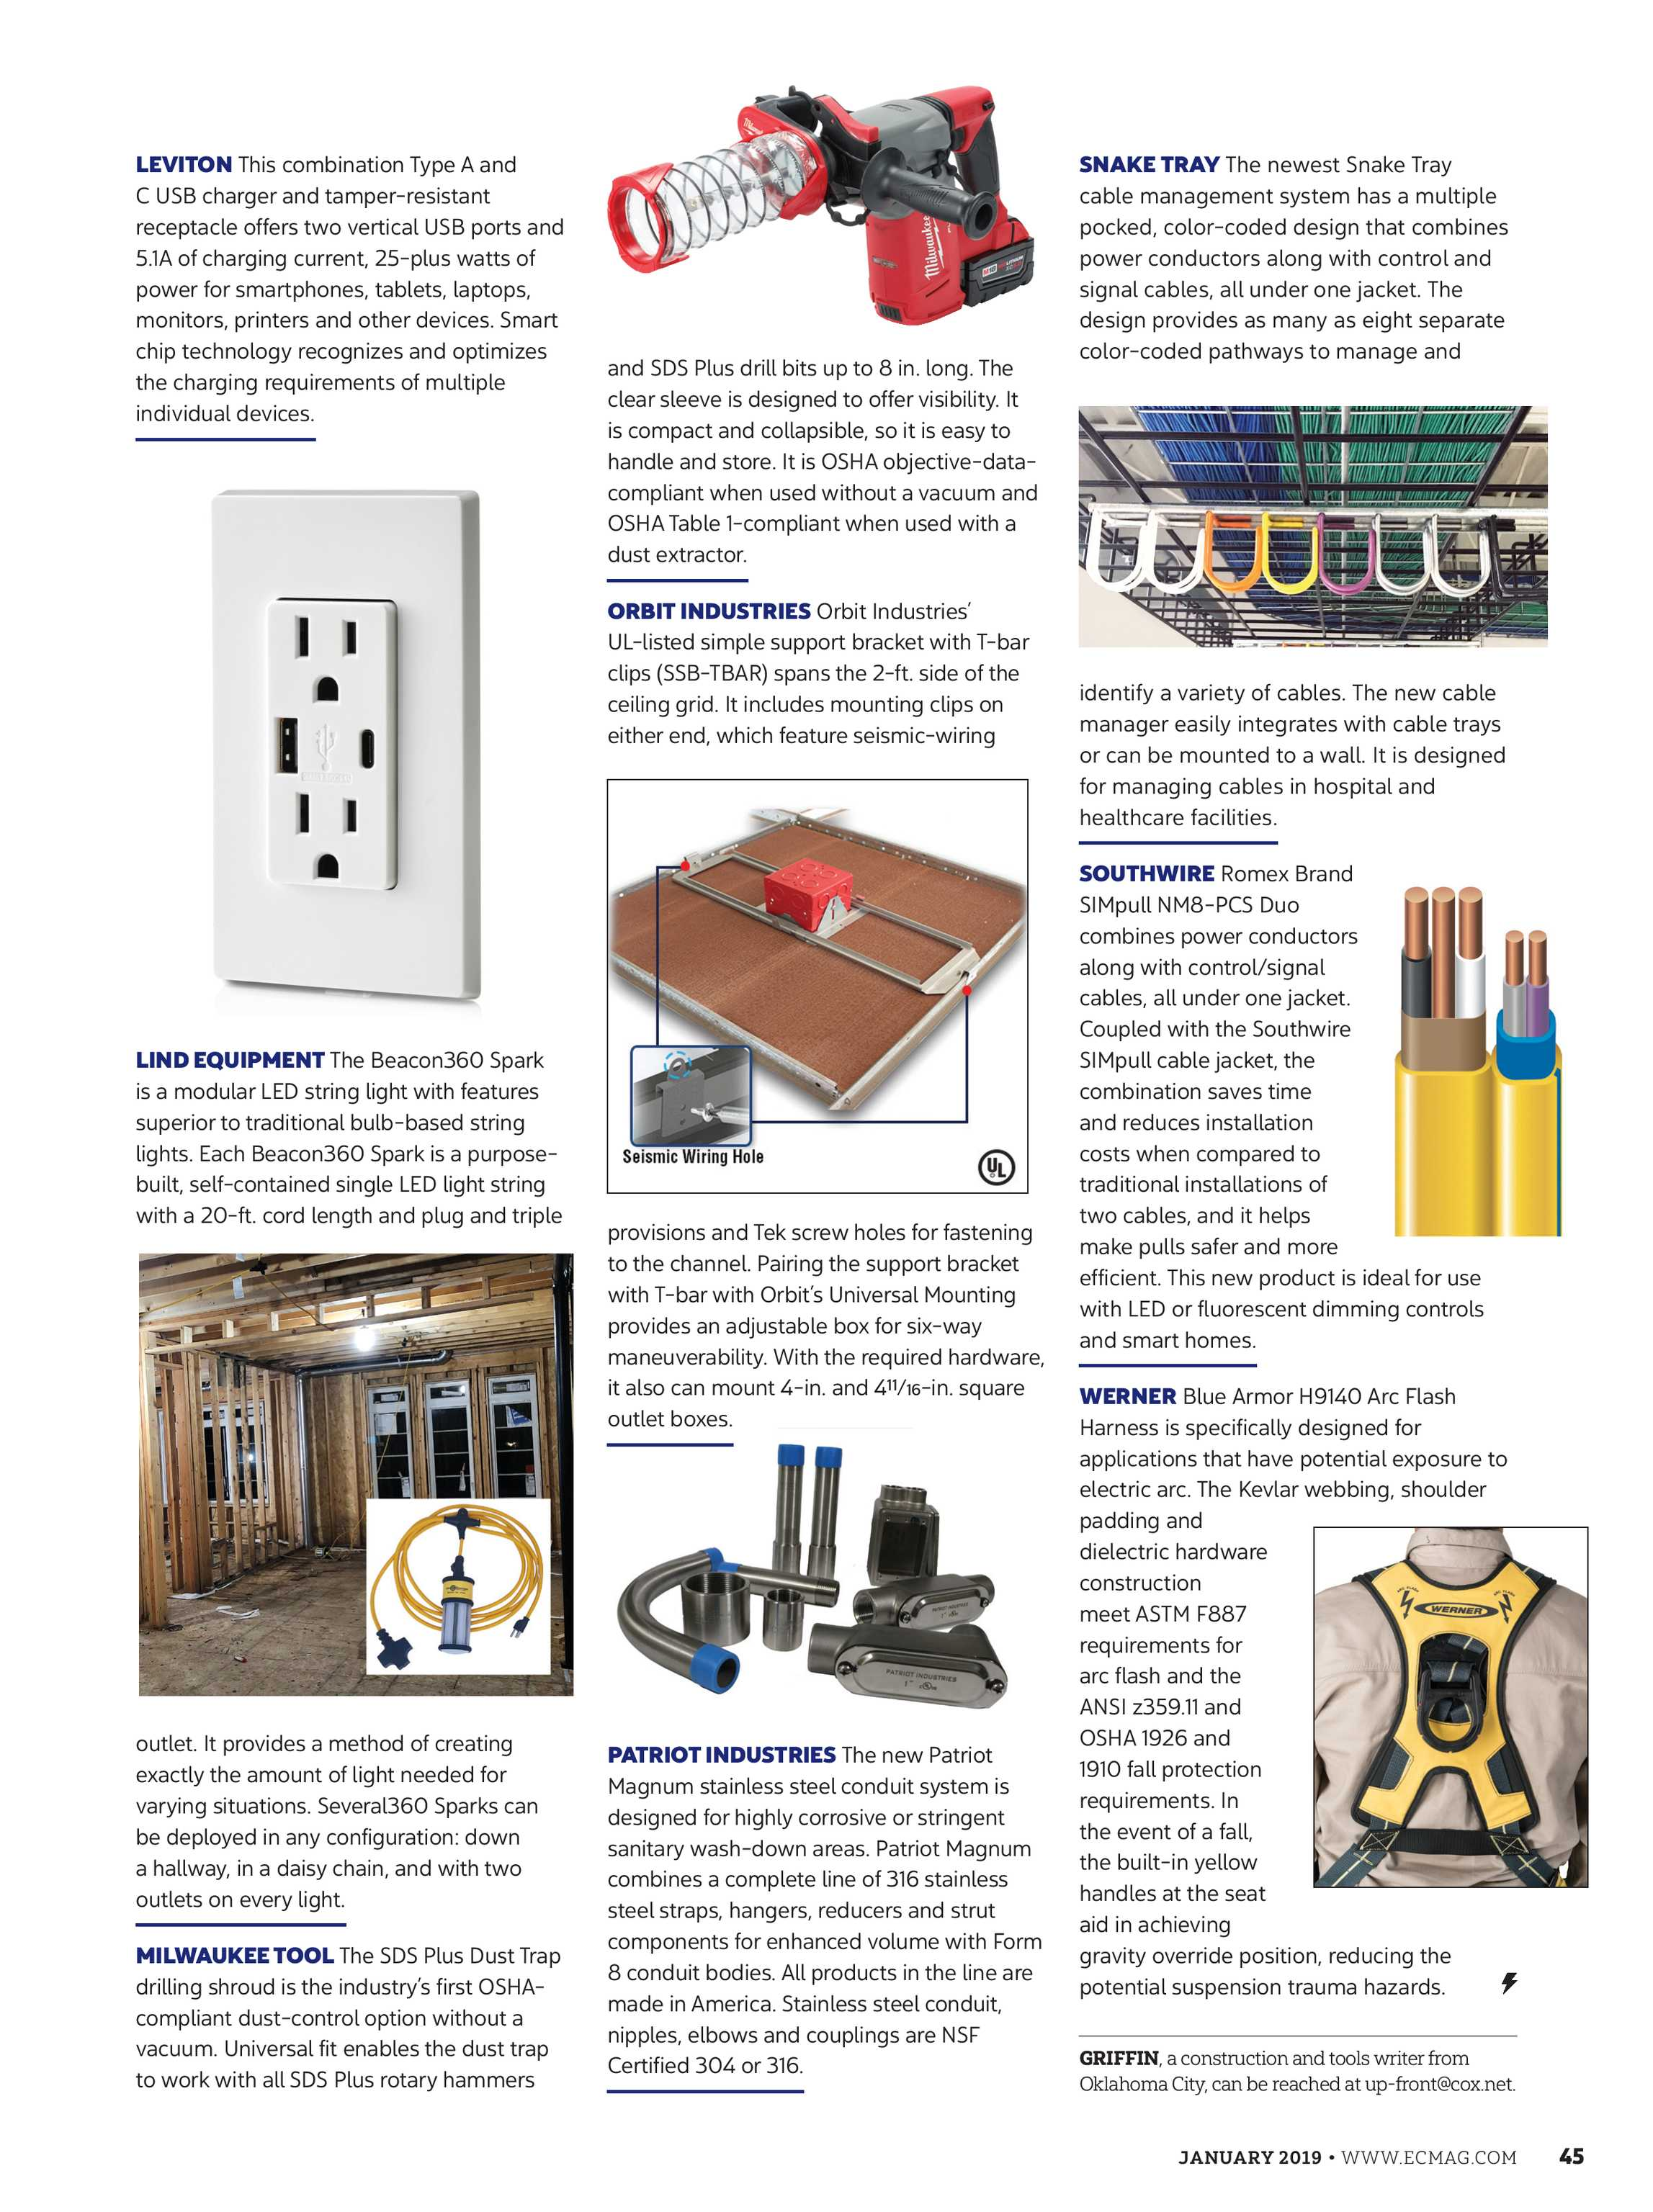 Electrical Contractor - January 2019 - page 46